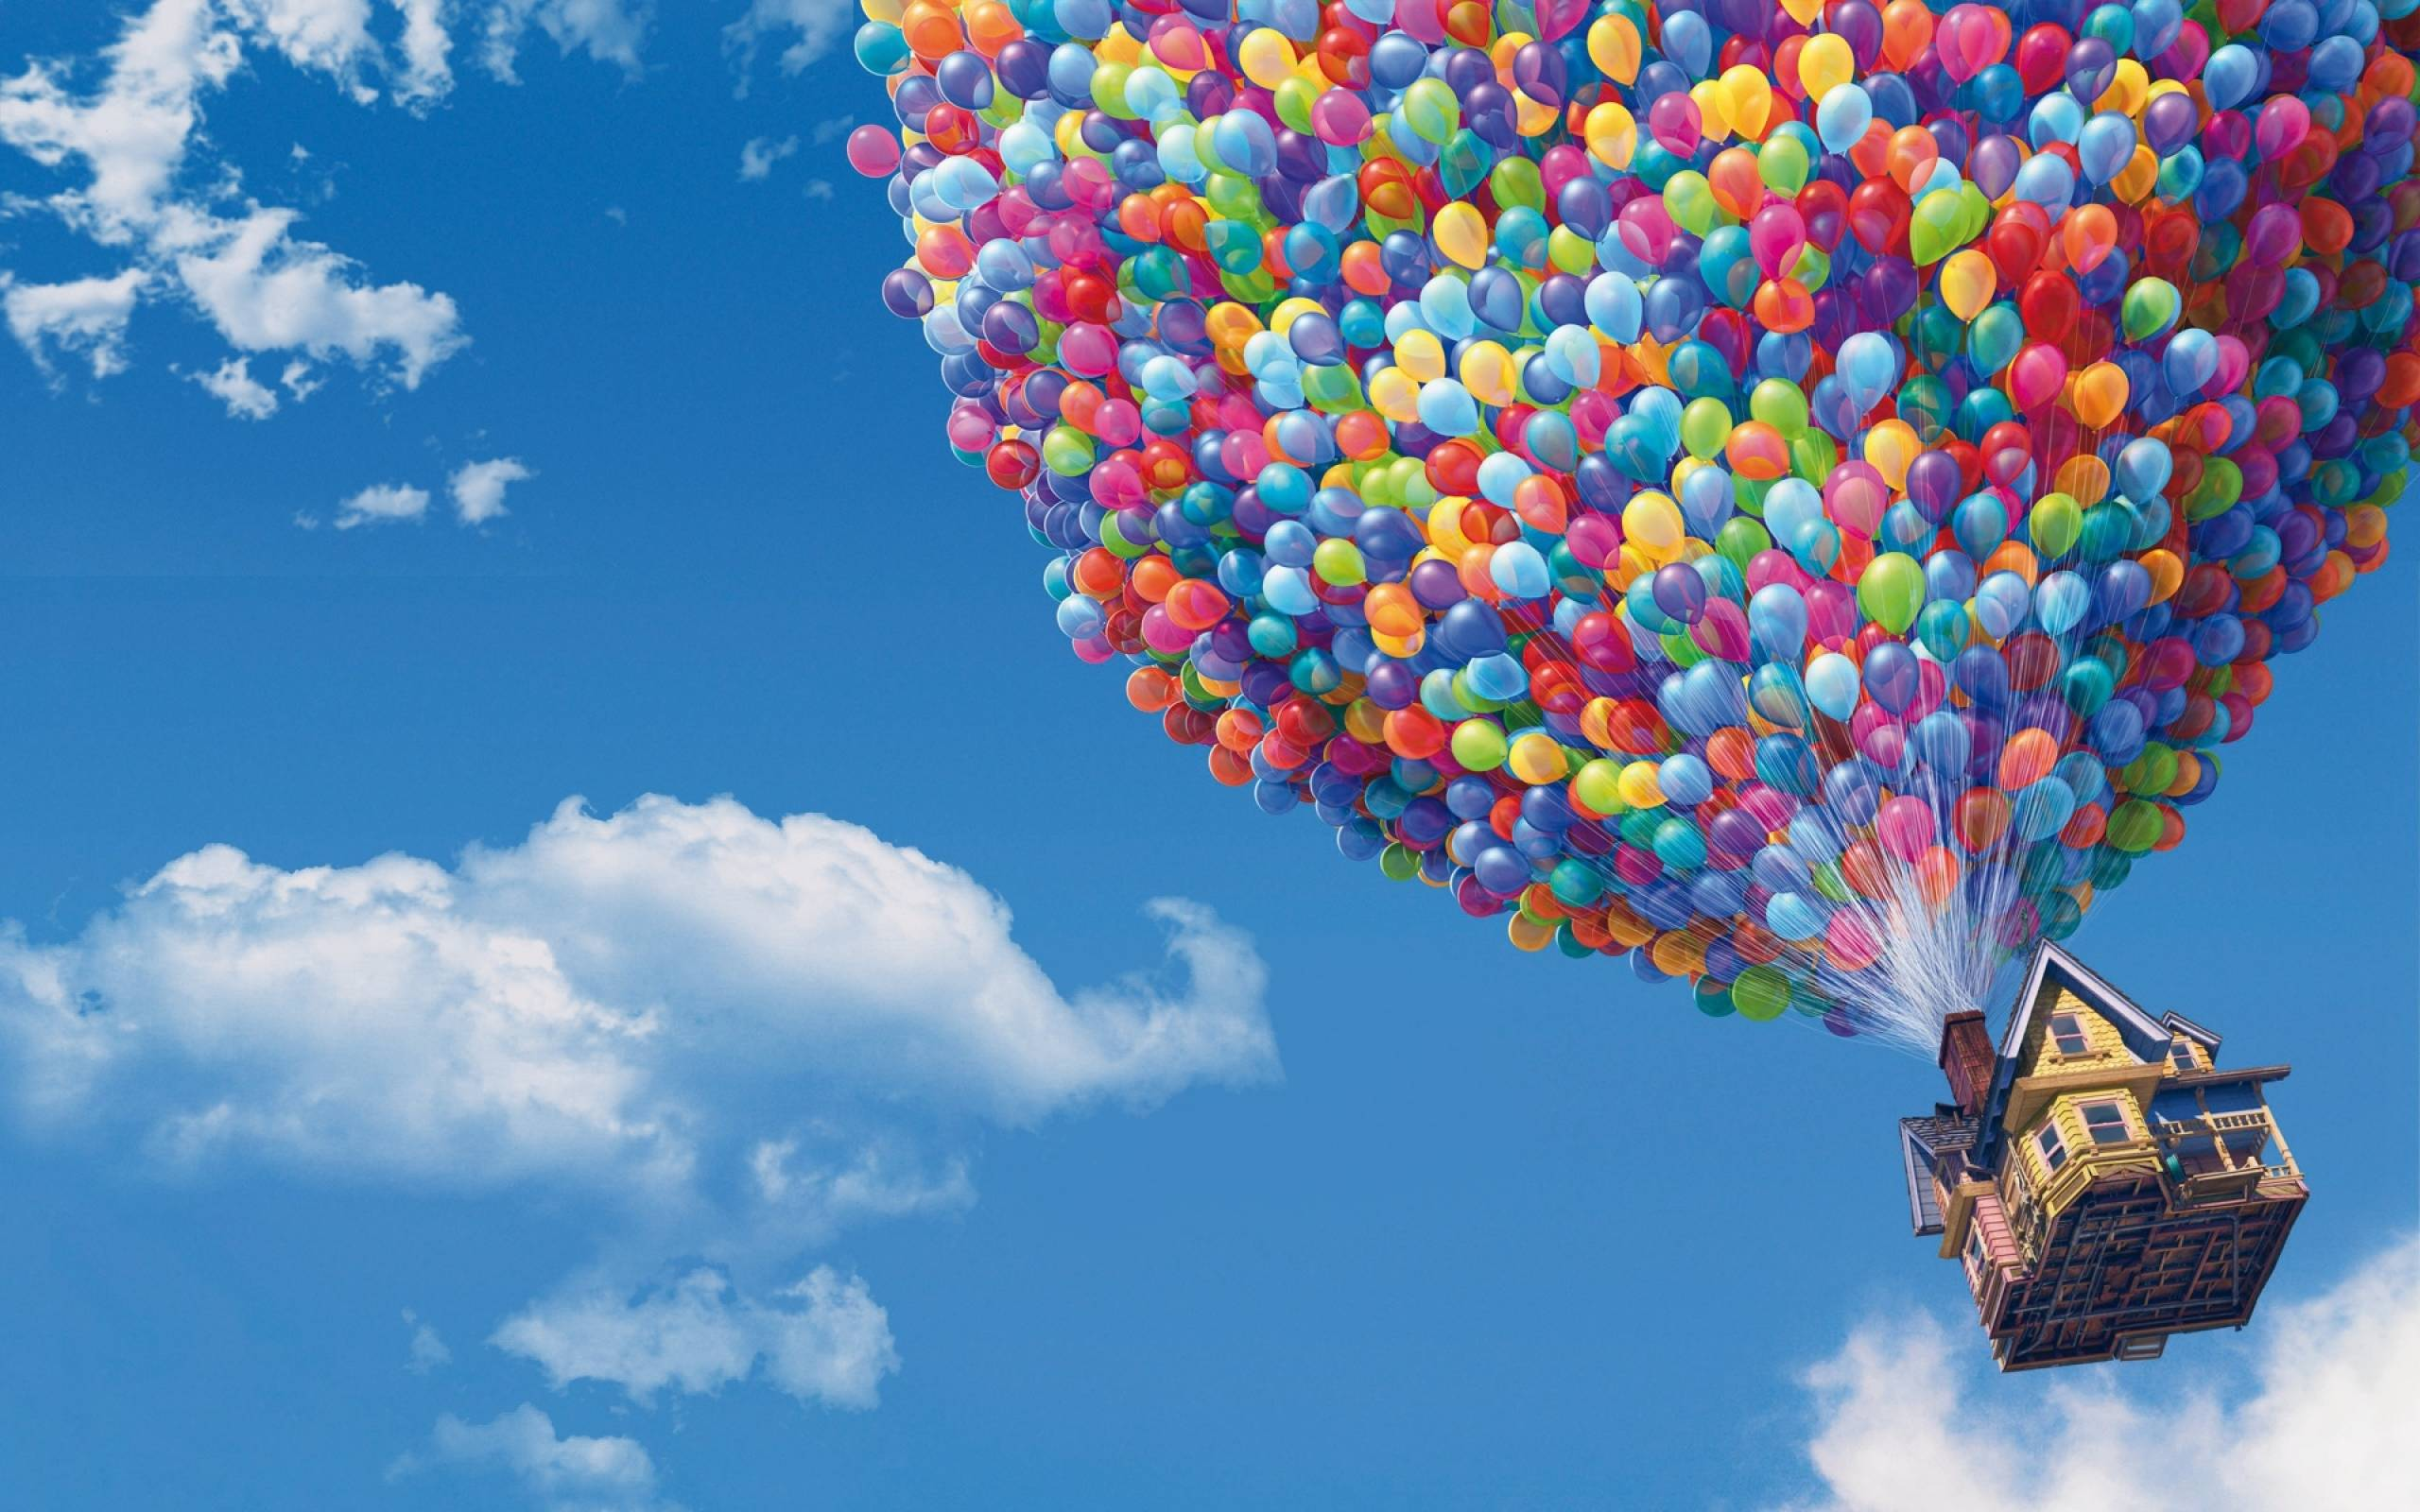 disney pixar wallpapers full hd wallpaper search